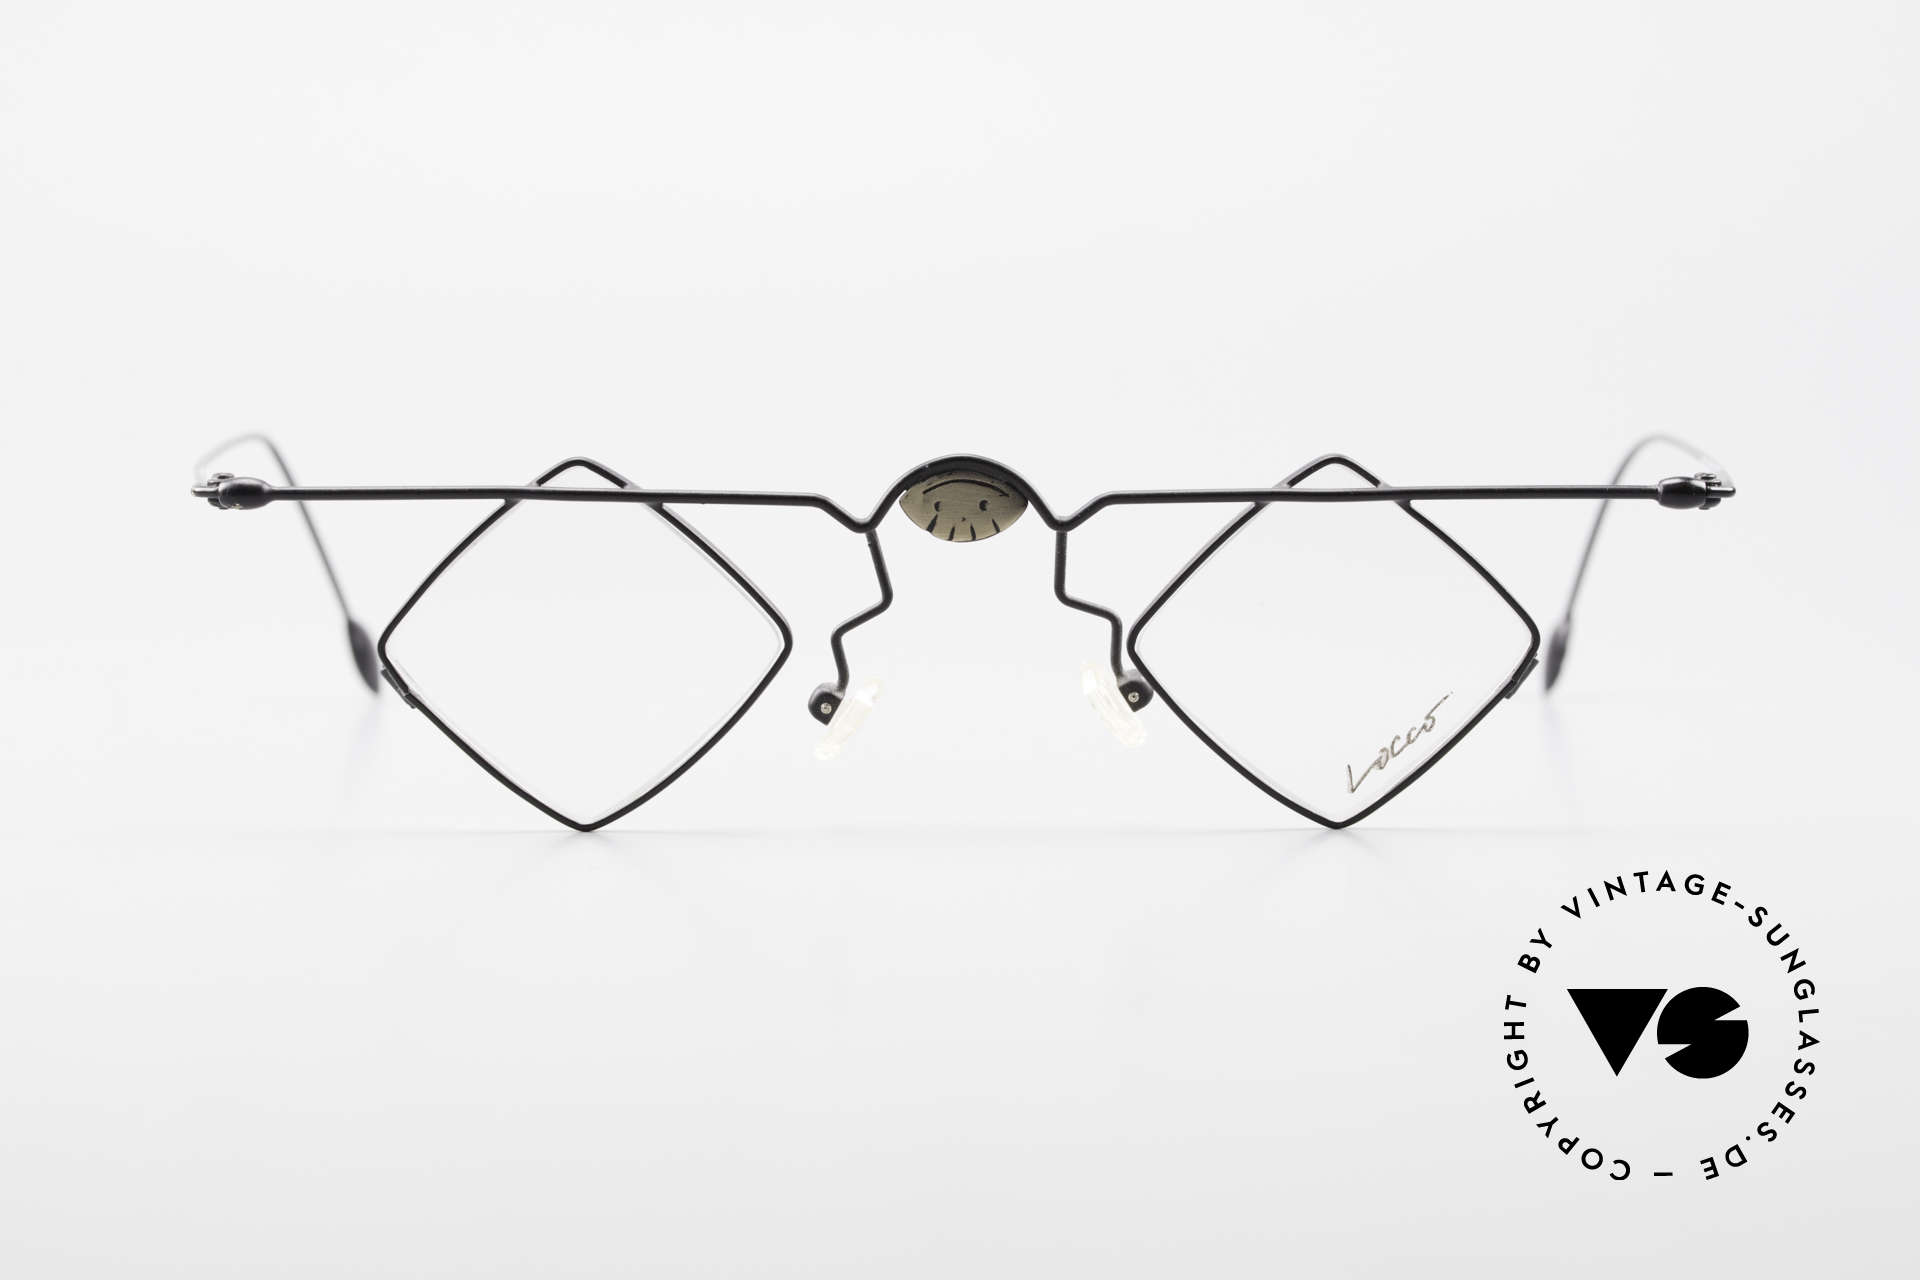 Locco 08 Good Mood Vintage Eyeglasses, artistic frame: 'opposite pole' to the 'mainstream', Made for Men and Women